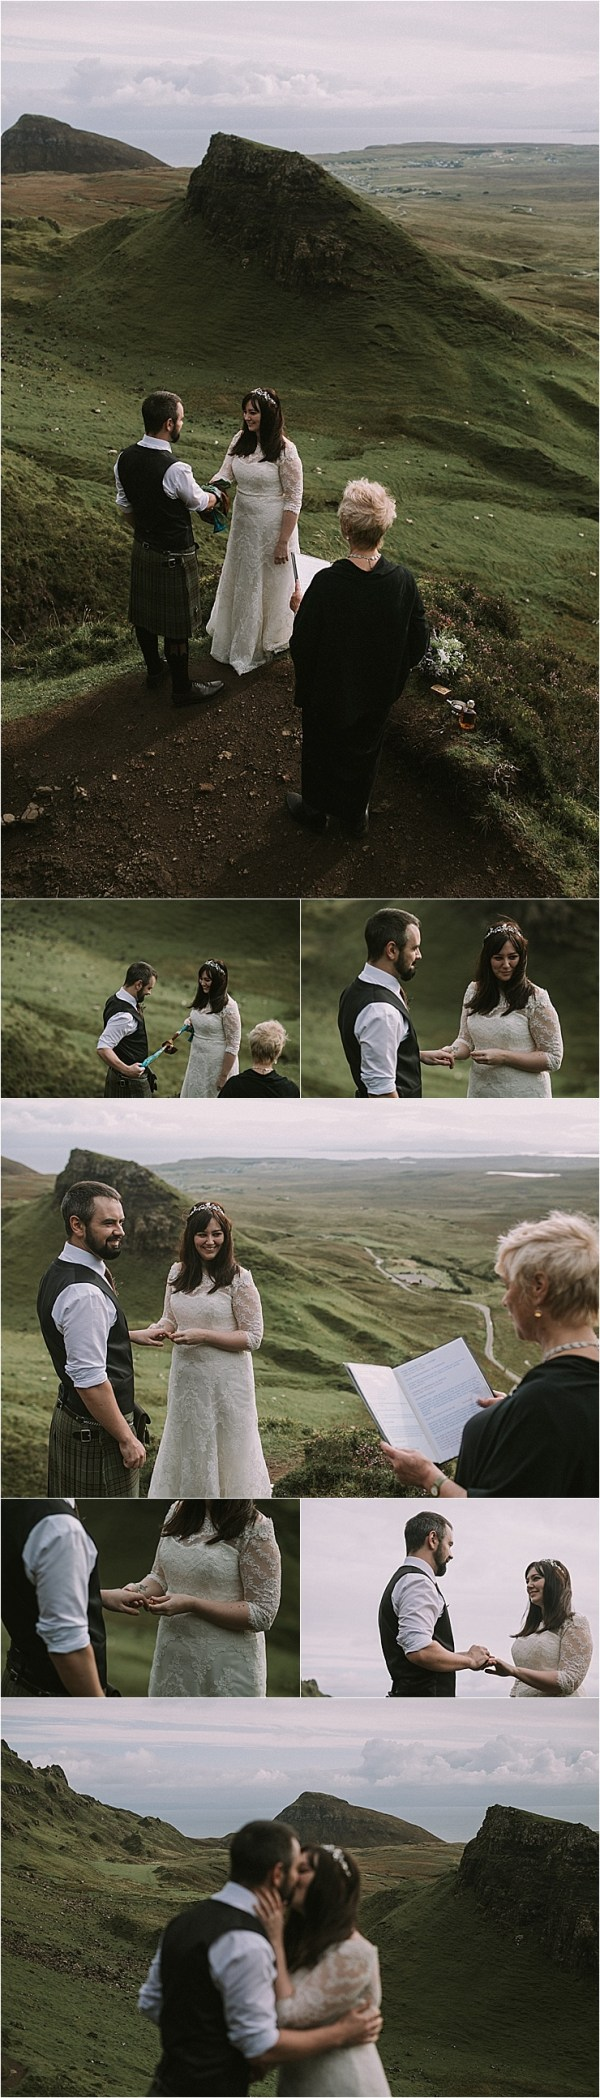 A handfasting ceremony on the Isle of Skye by Maureen Du Preez